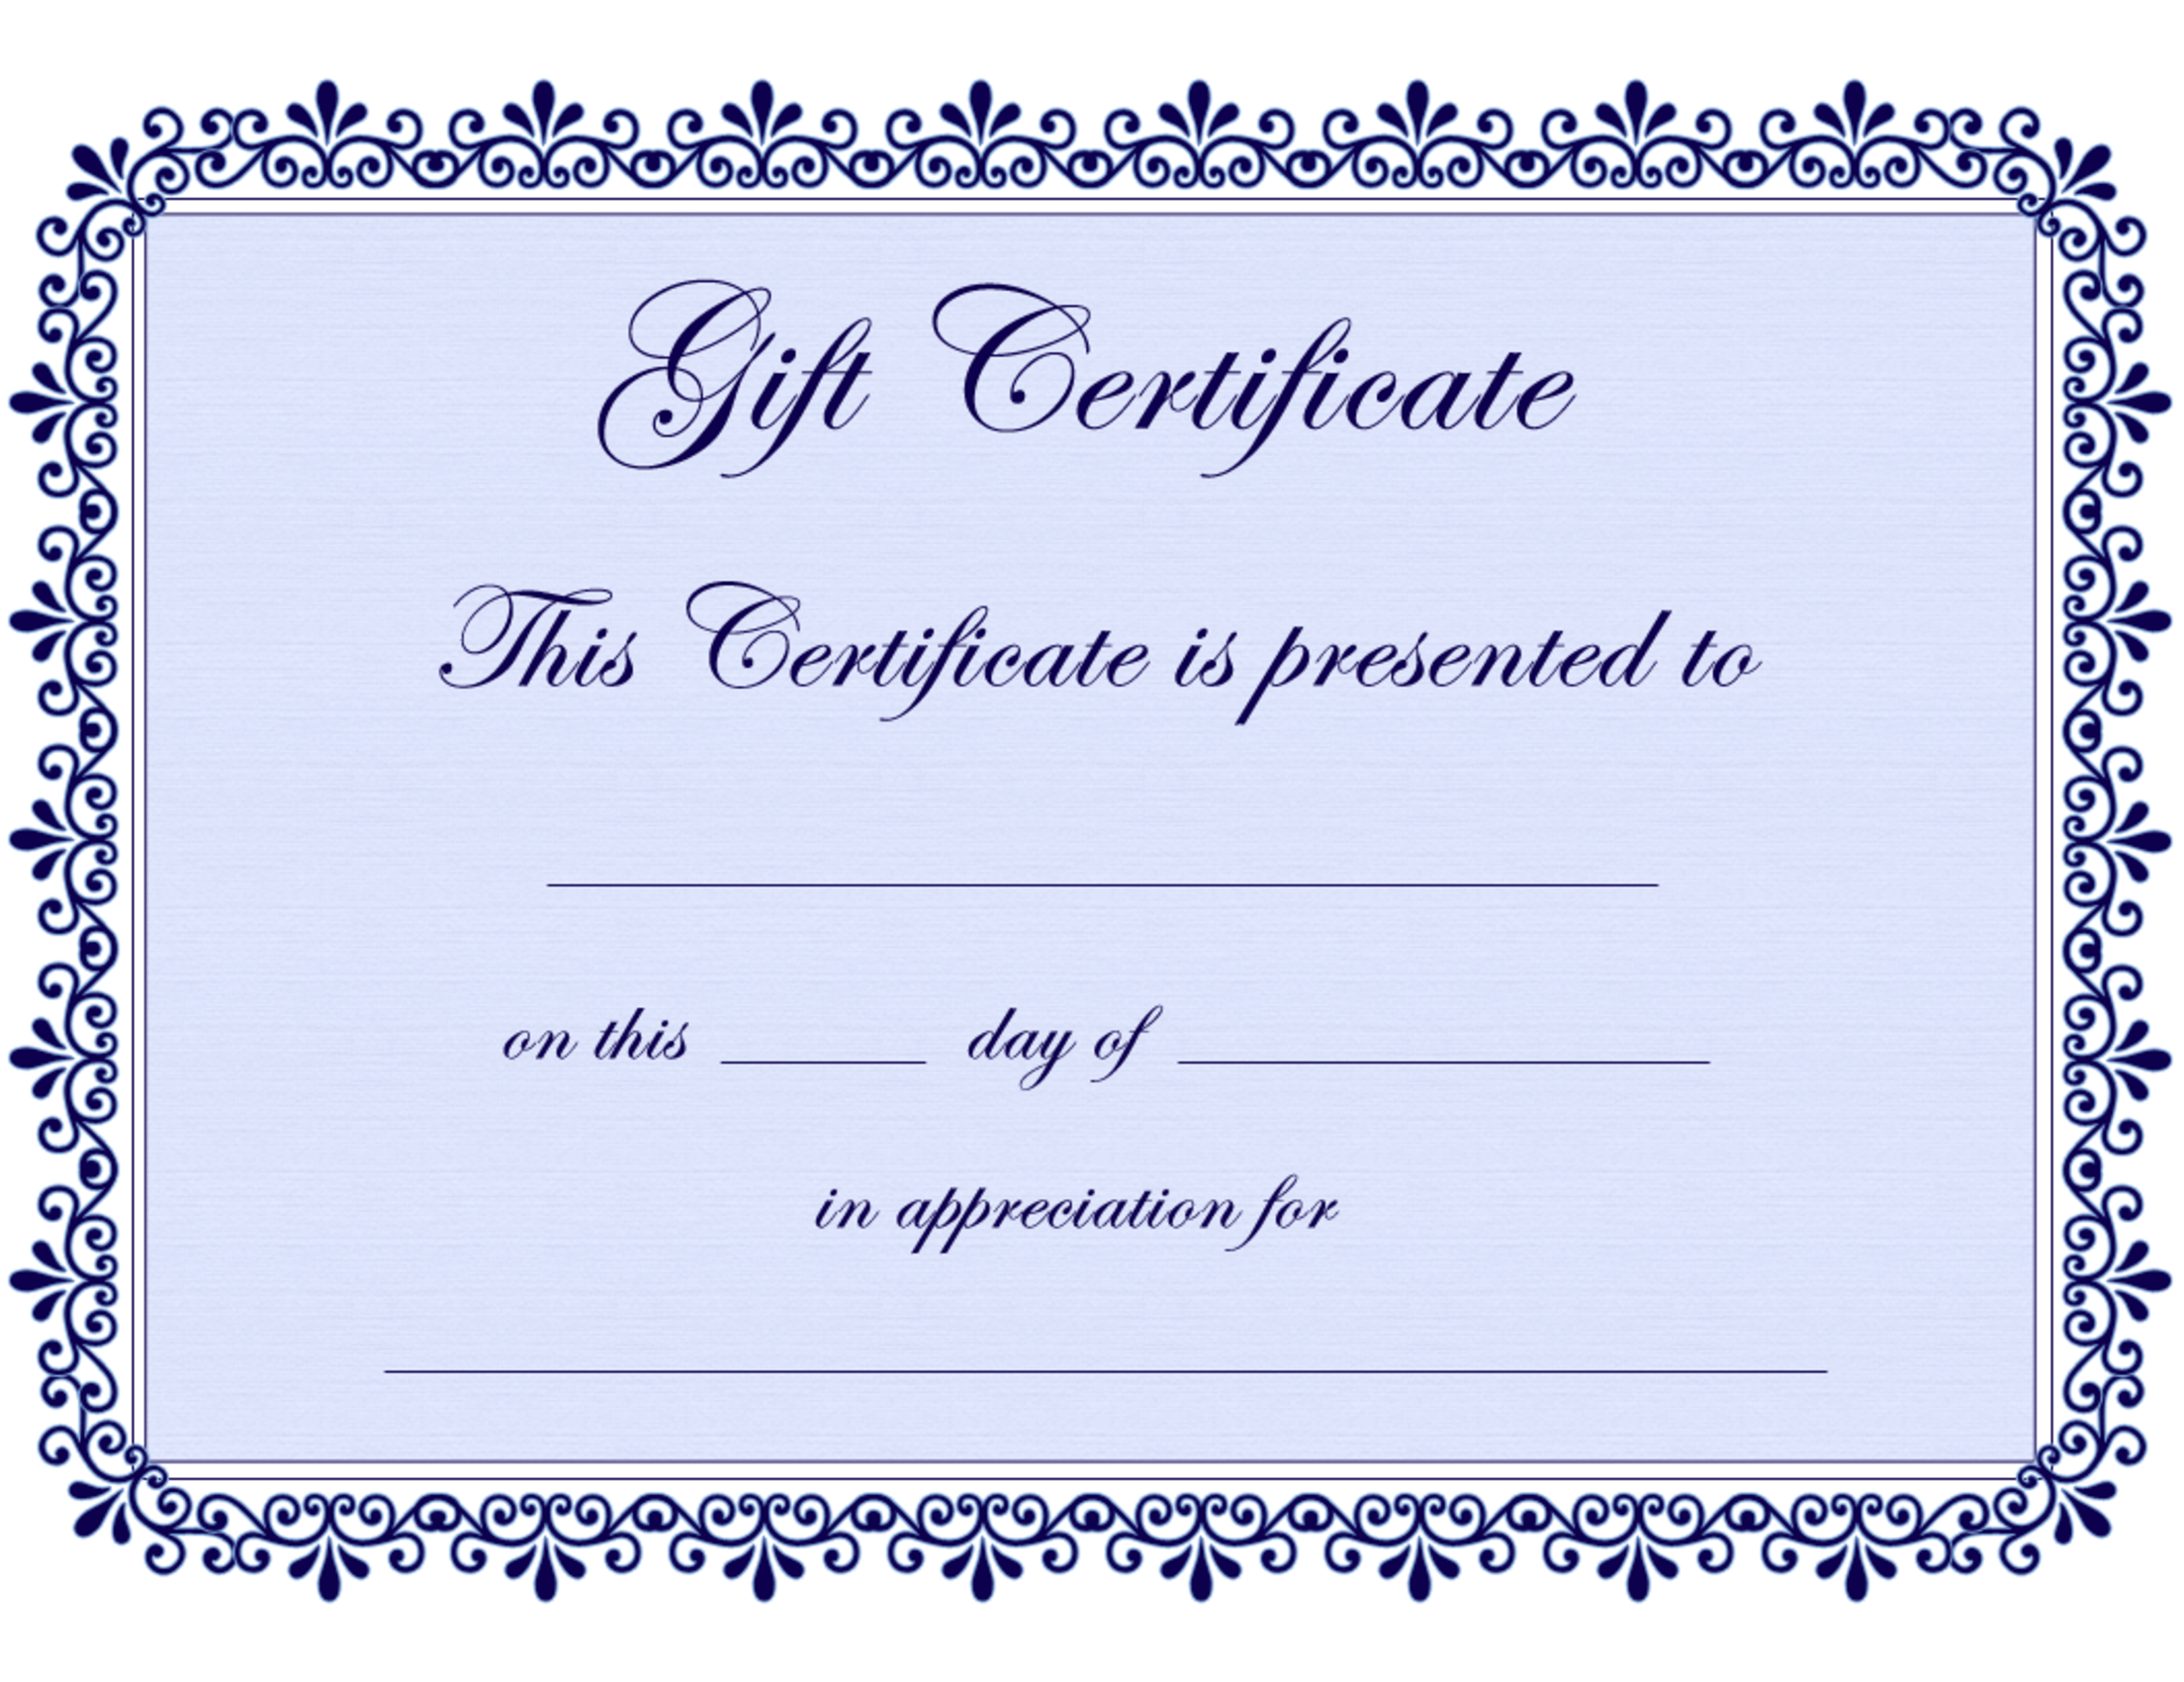 how to word a gift certificate – Gift Certificate Letter Template